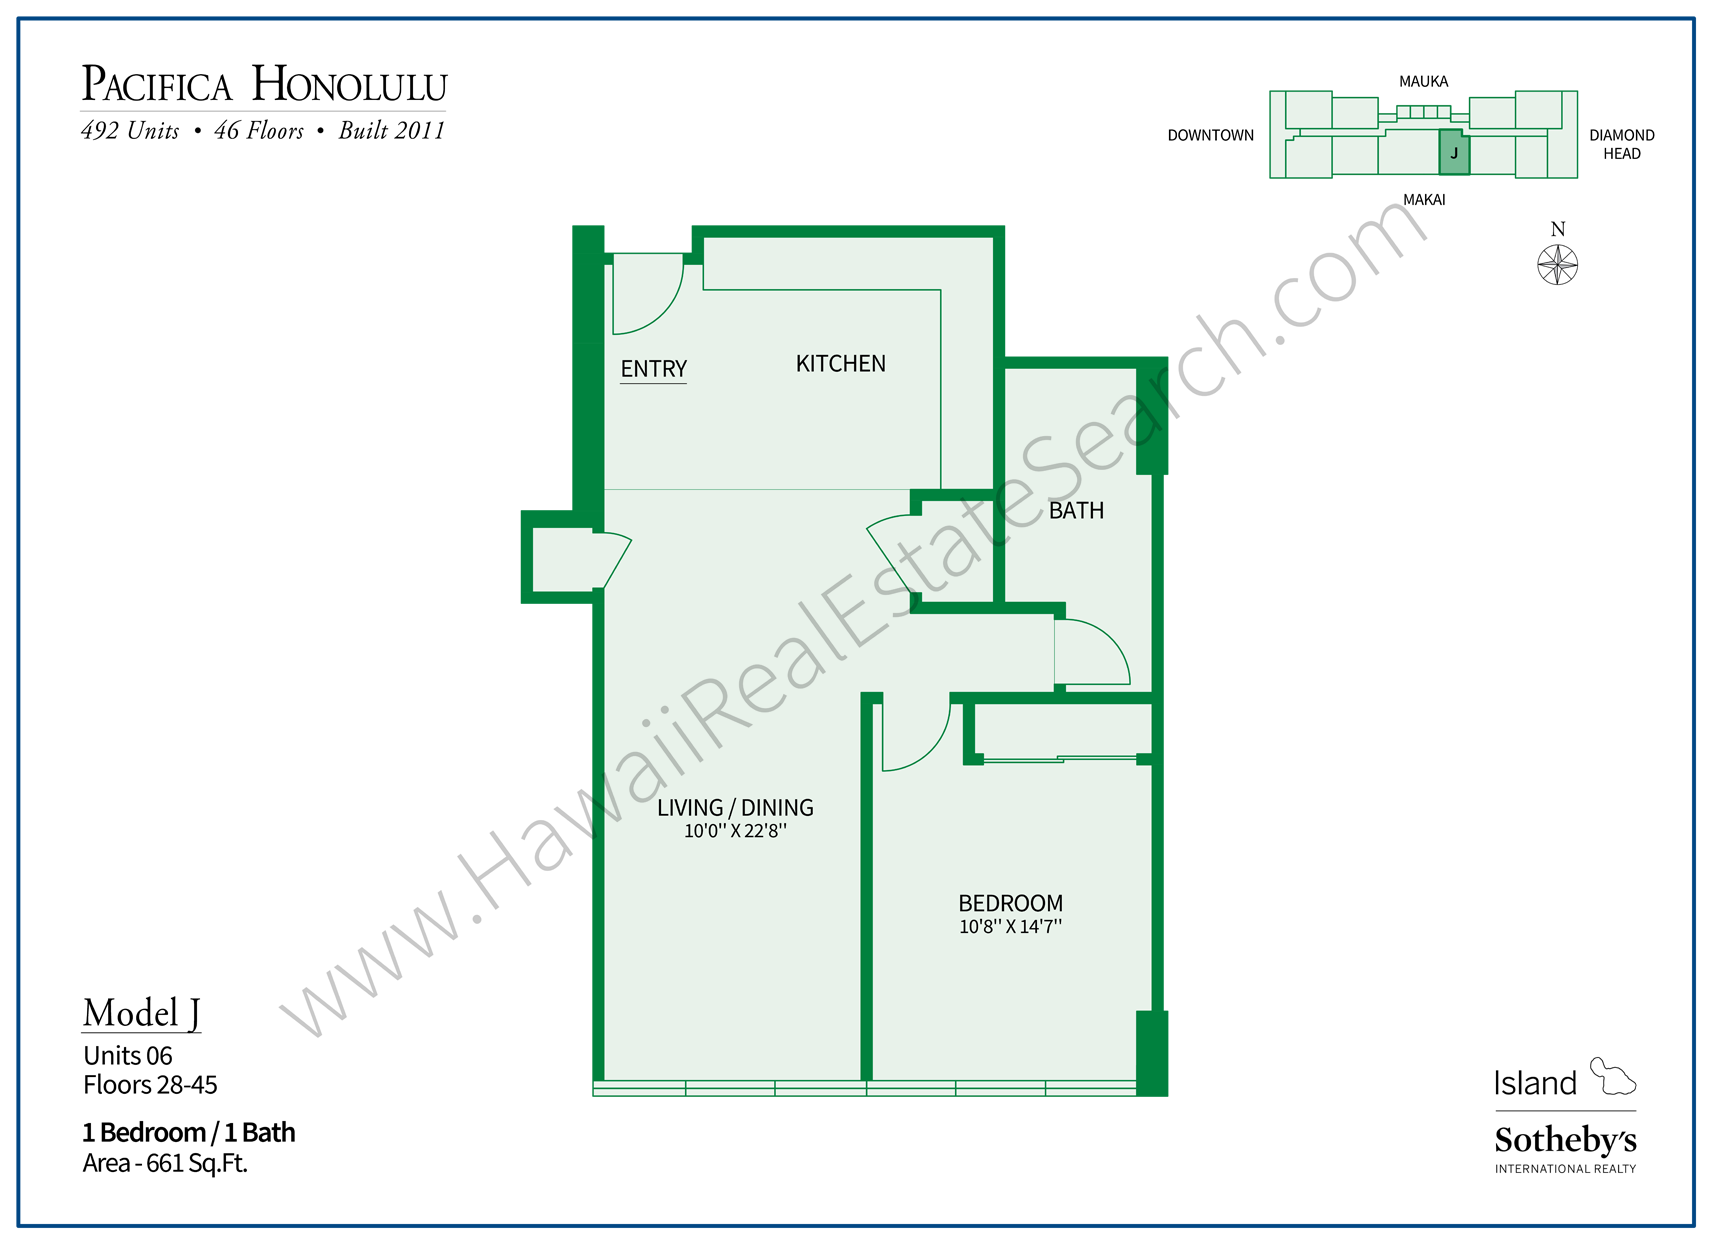 Pacifica Honolulu Floor Plan J